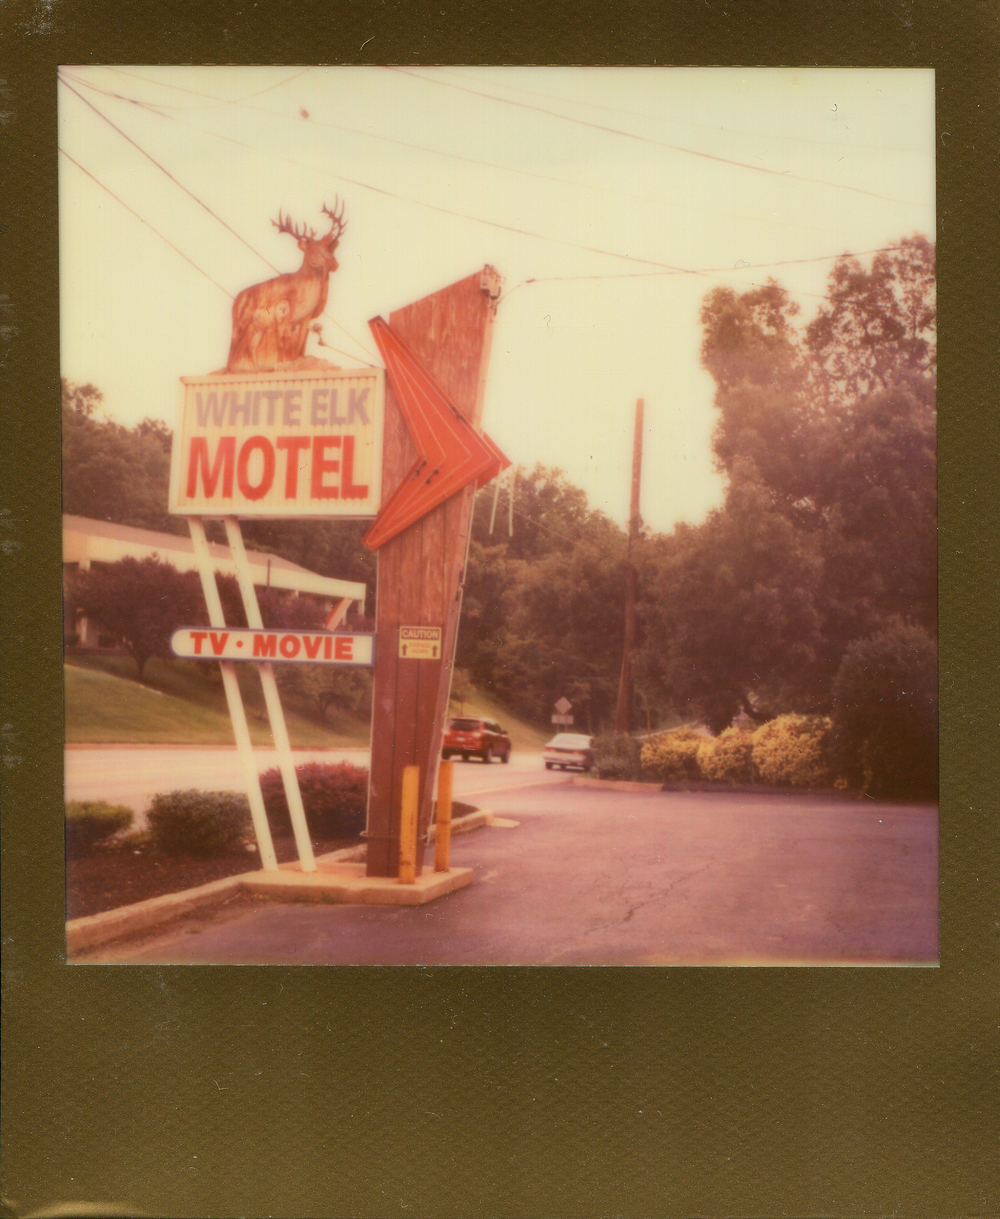 White Elk Motel Laurel MD 072014.jpg